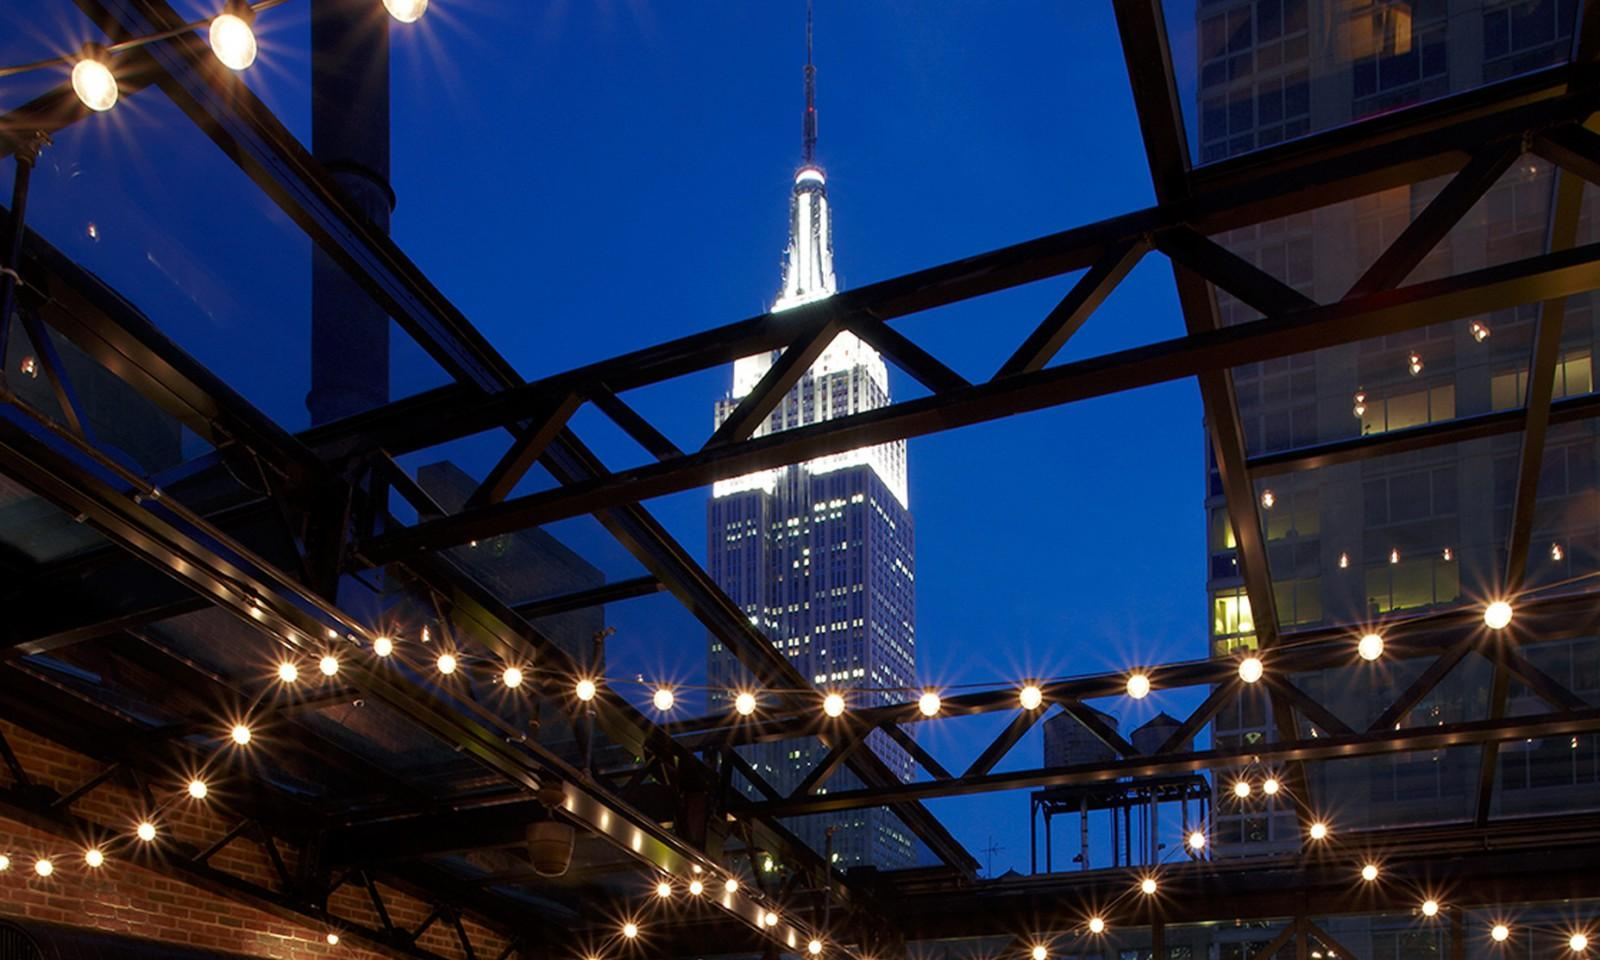 Refinery-Rooftop-Bar-New-York-03-1600x960